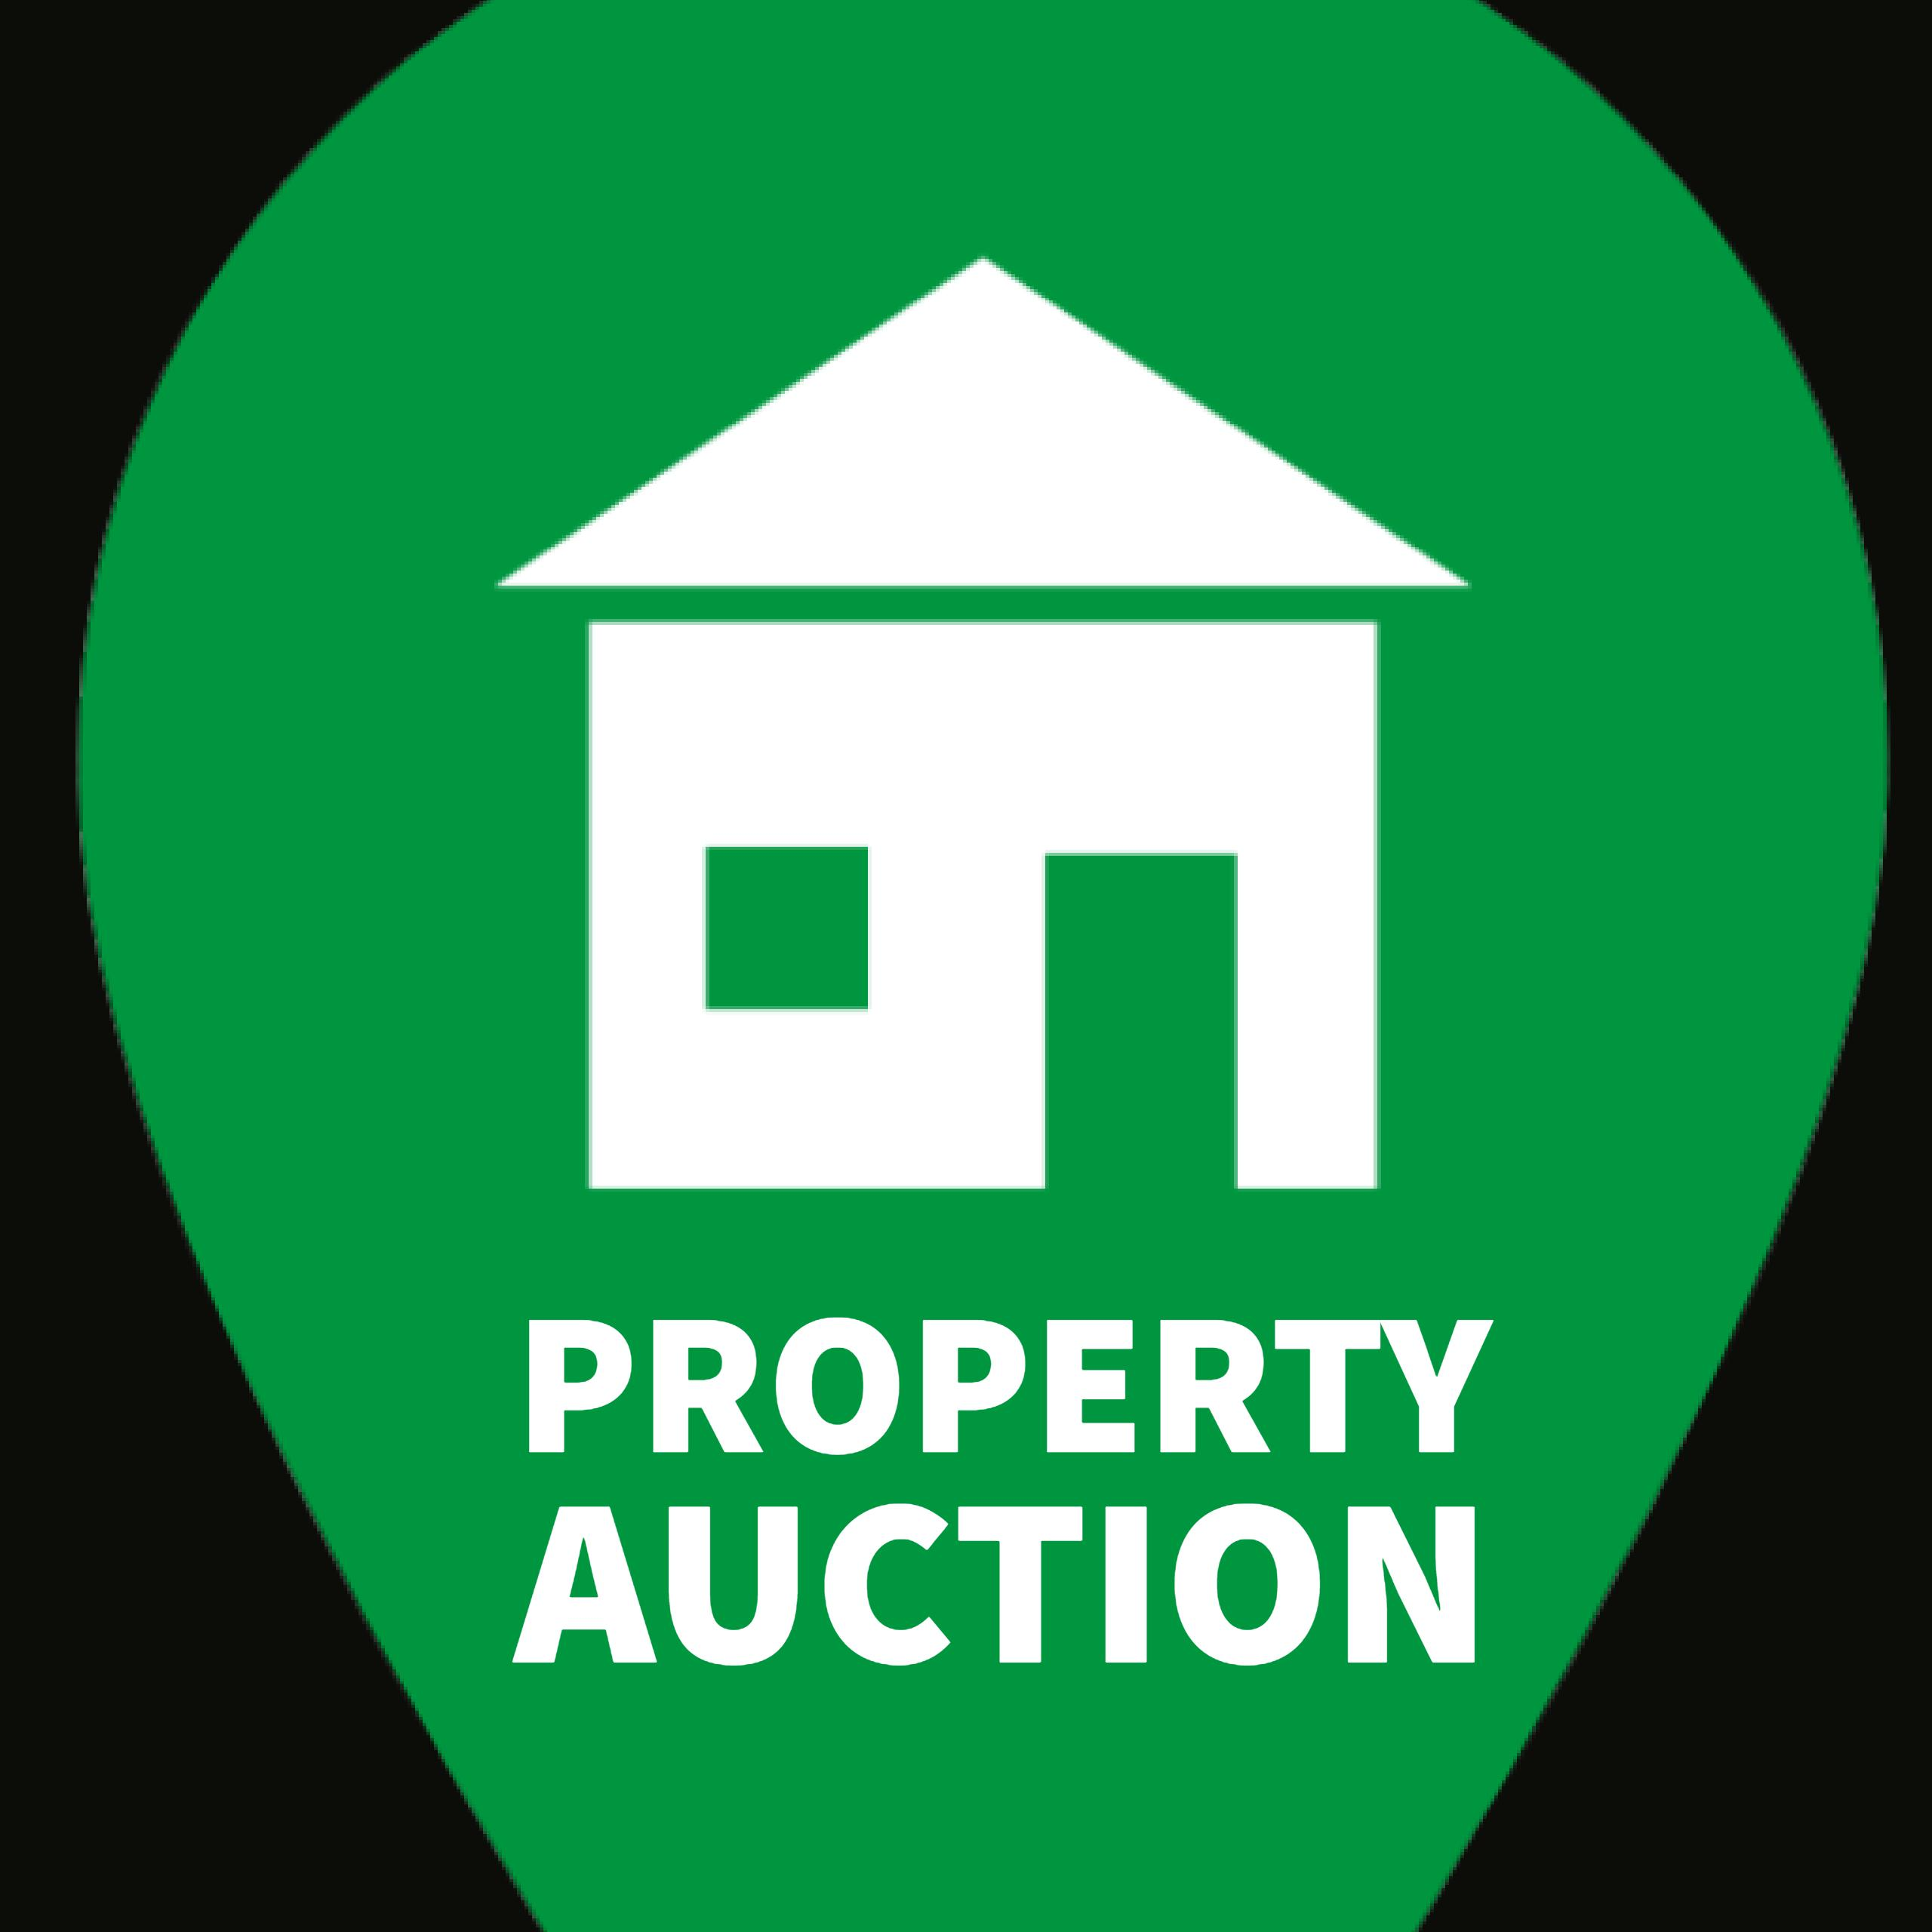 Marion County Real Property Auction